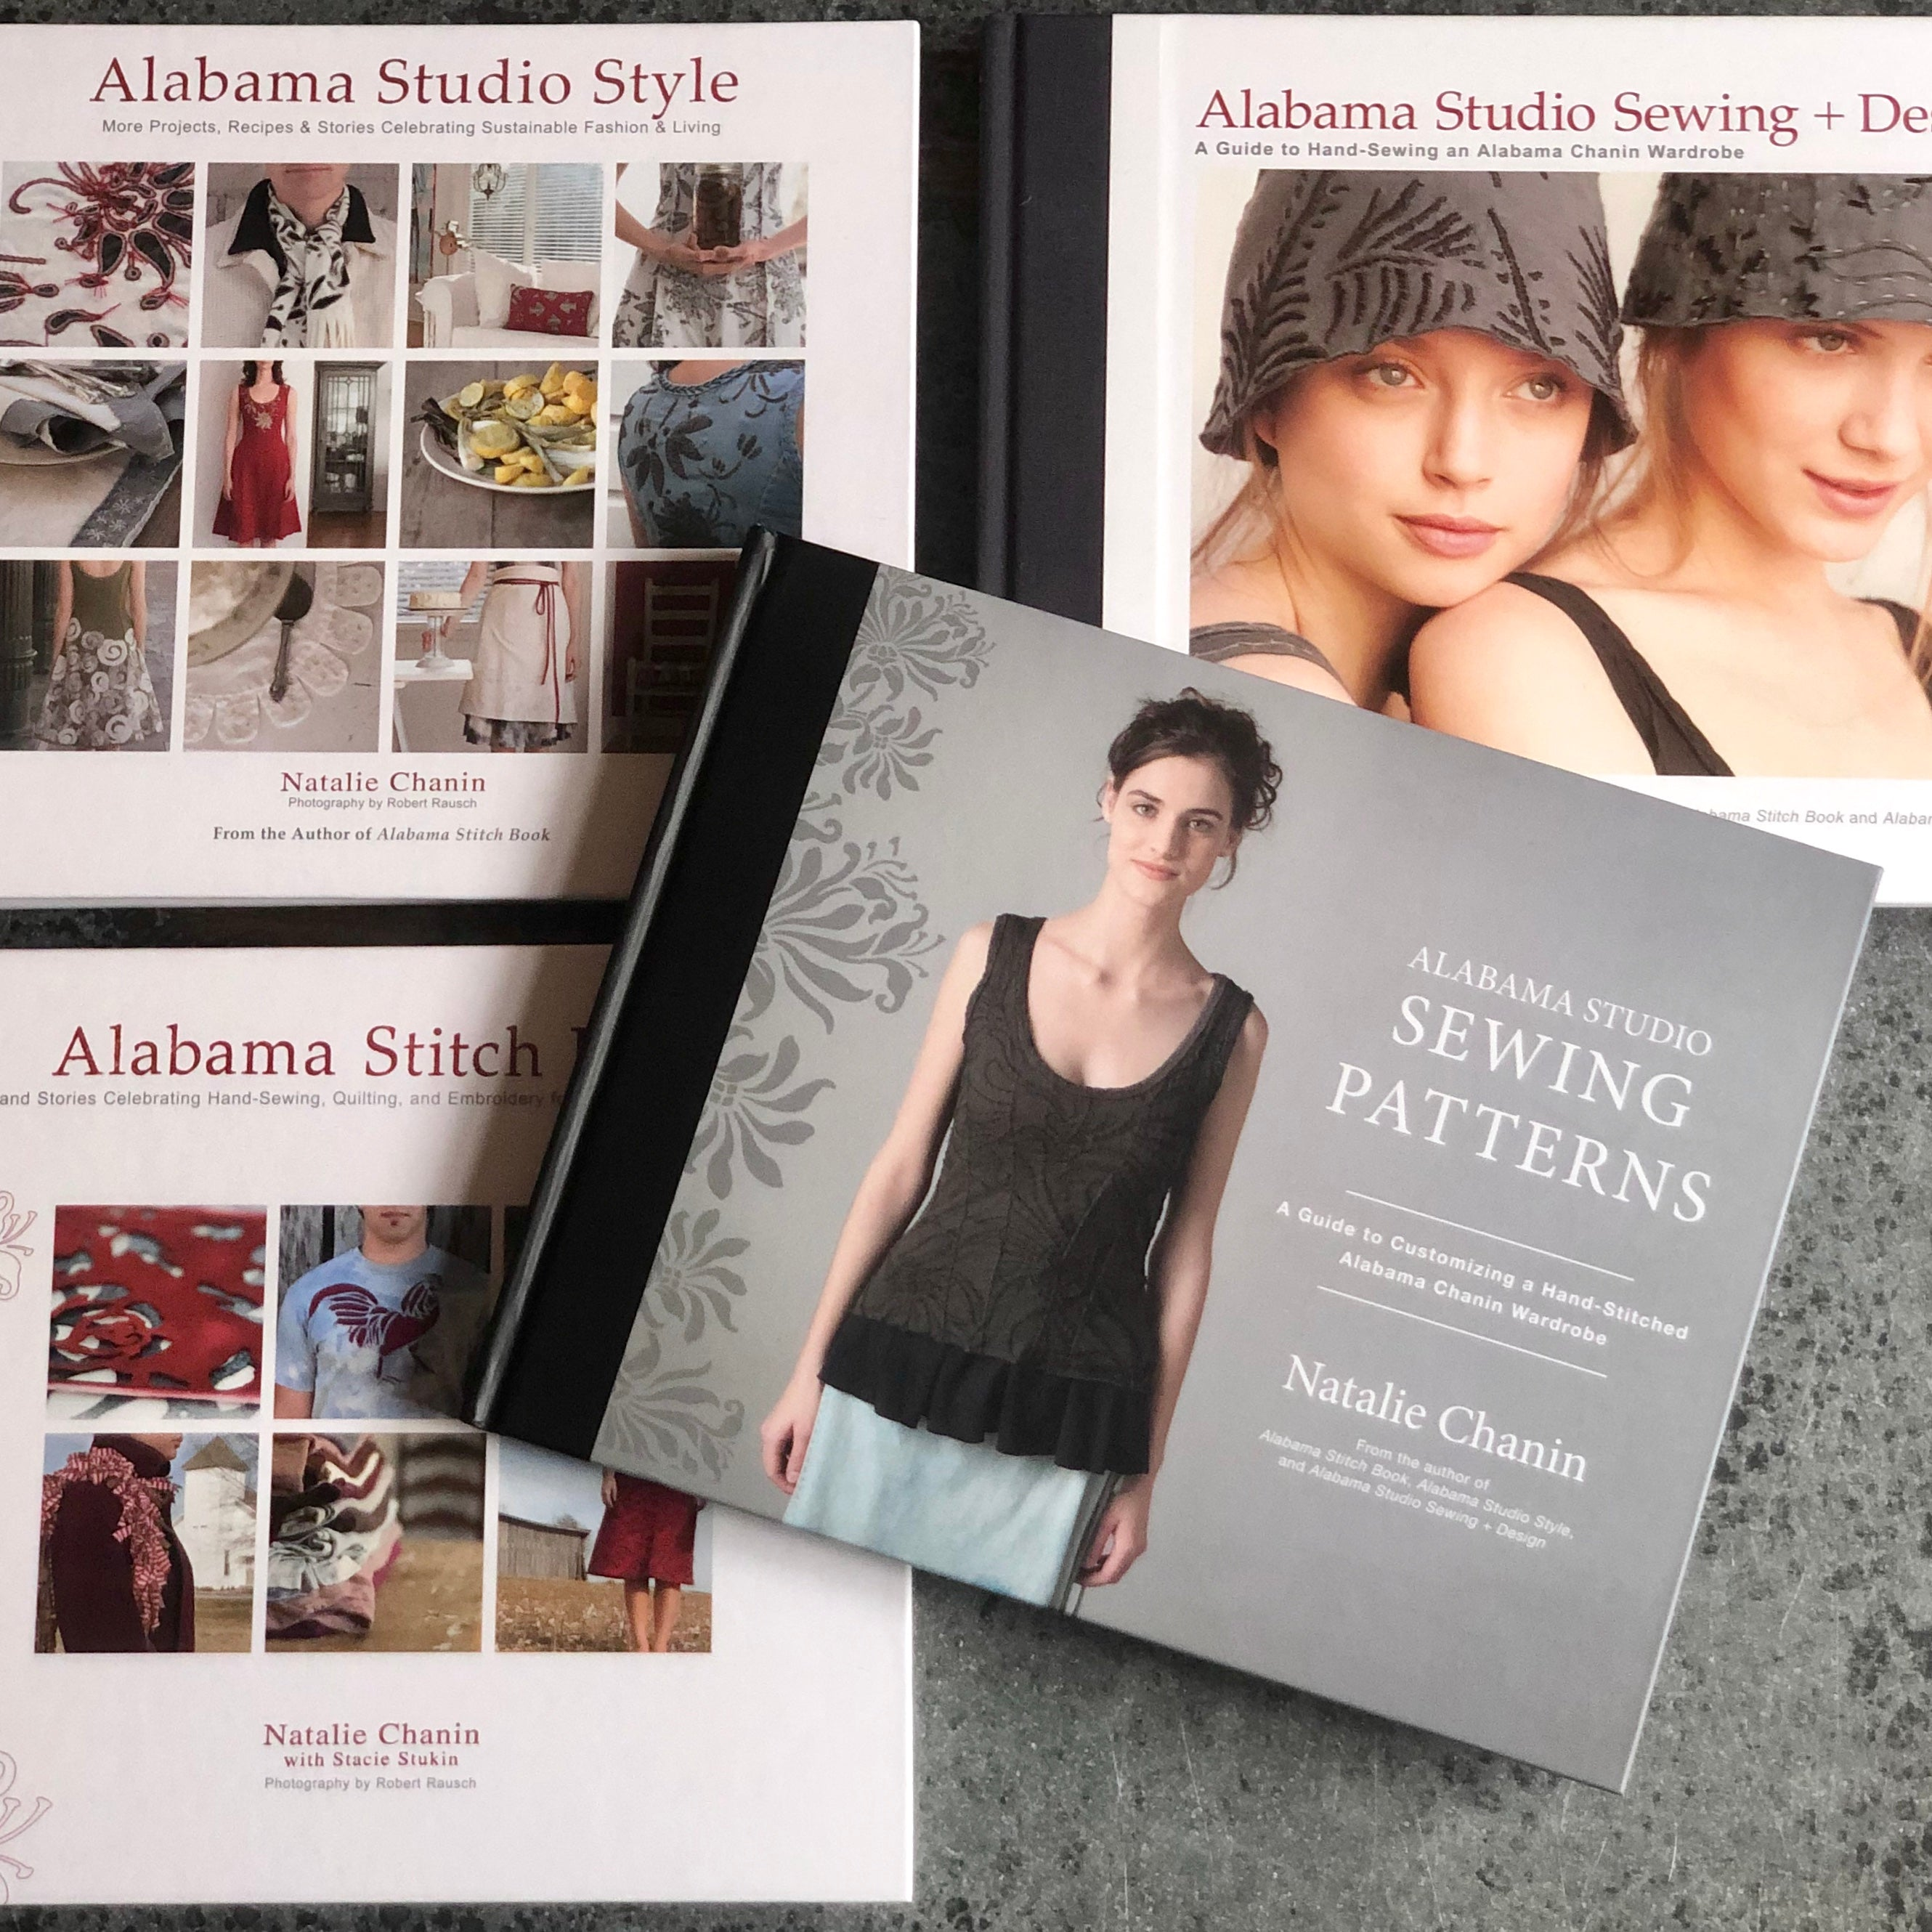 Alabama Studio Sewing and Design: A Guide to Hand Sewing Thumbnail